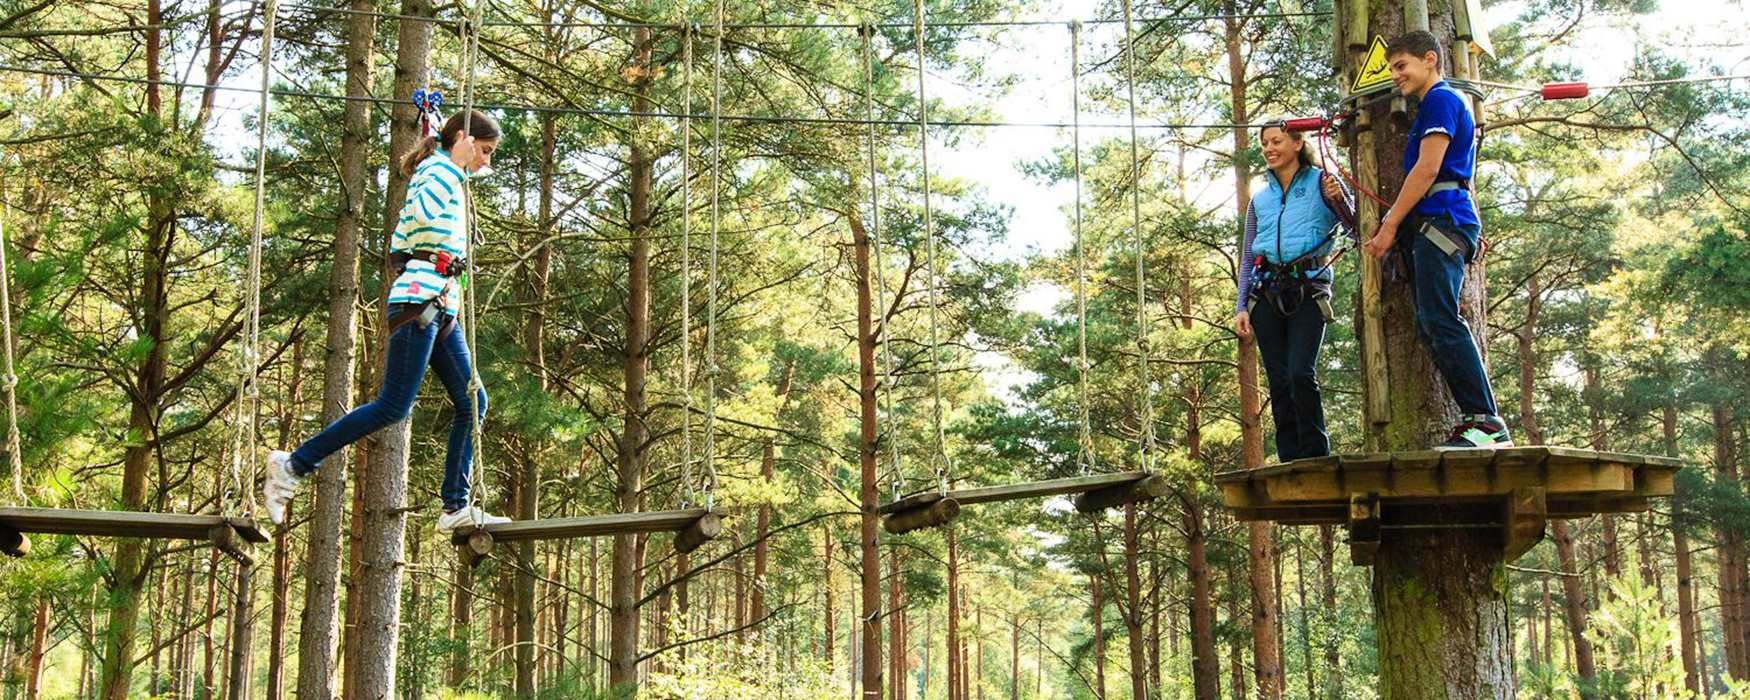 Person in the trees at Go Ape!